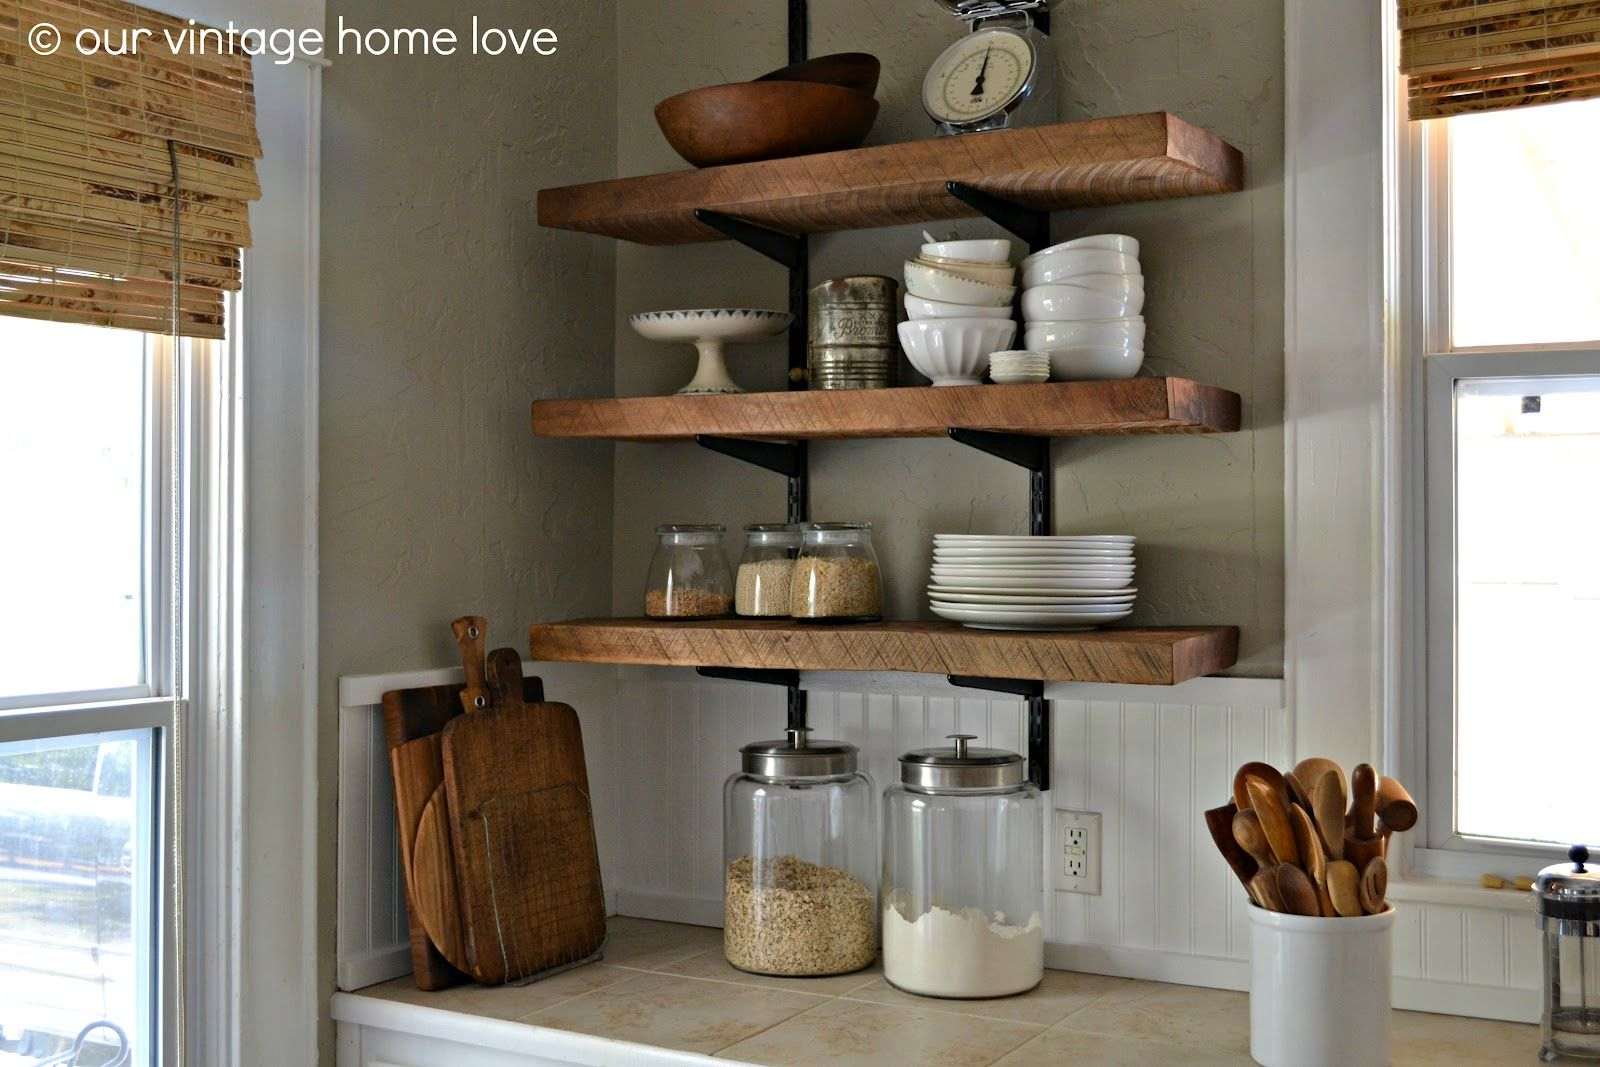 Kitchen Shelves Instead Of Cabinets Reclaimed Wood Open Shelving While I Show You Pictures